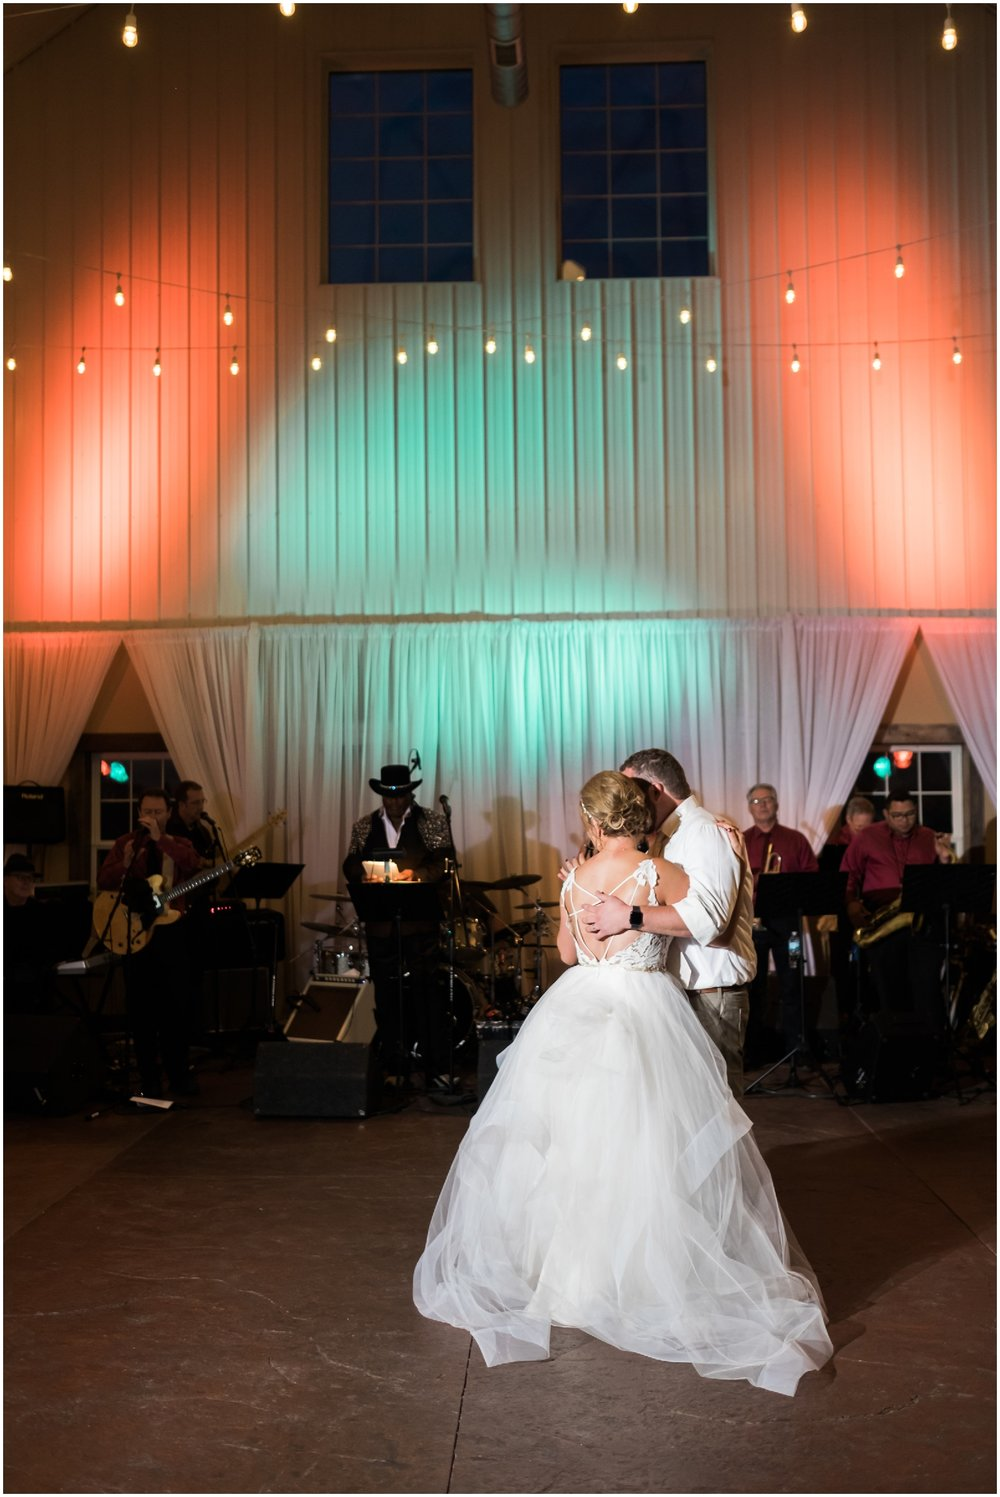 Minnesota-Wedding-Venue- Chaska-MN-Rustic-Barn-Weddings_0607.jpg